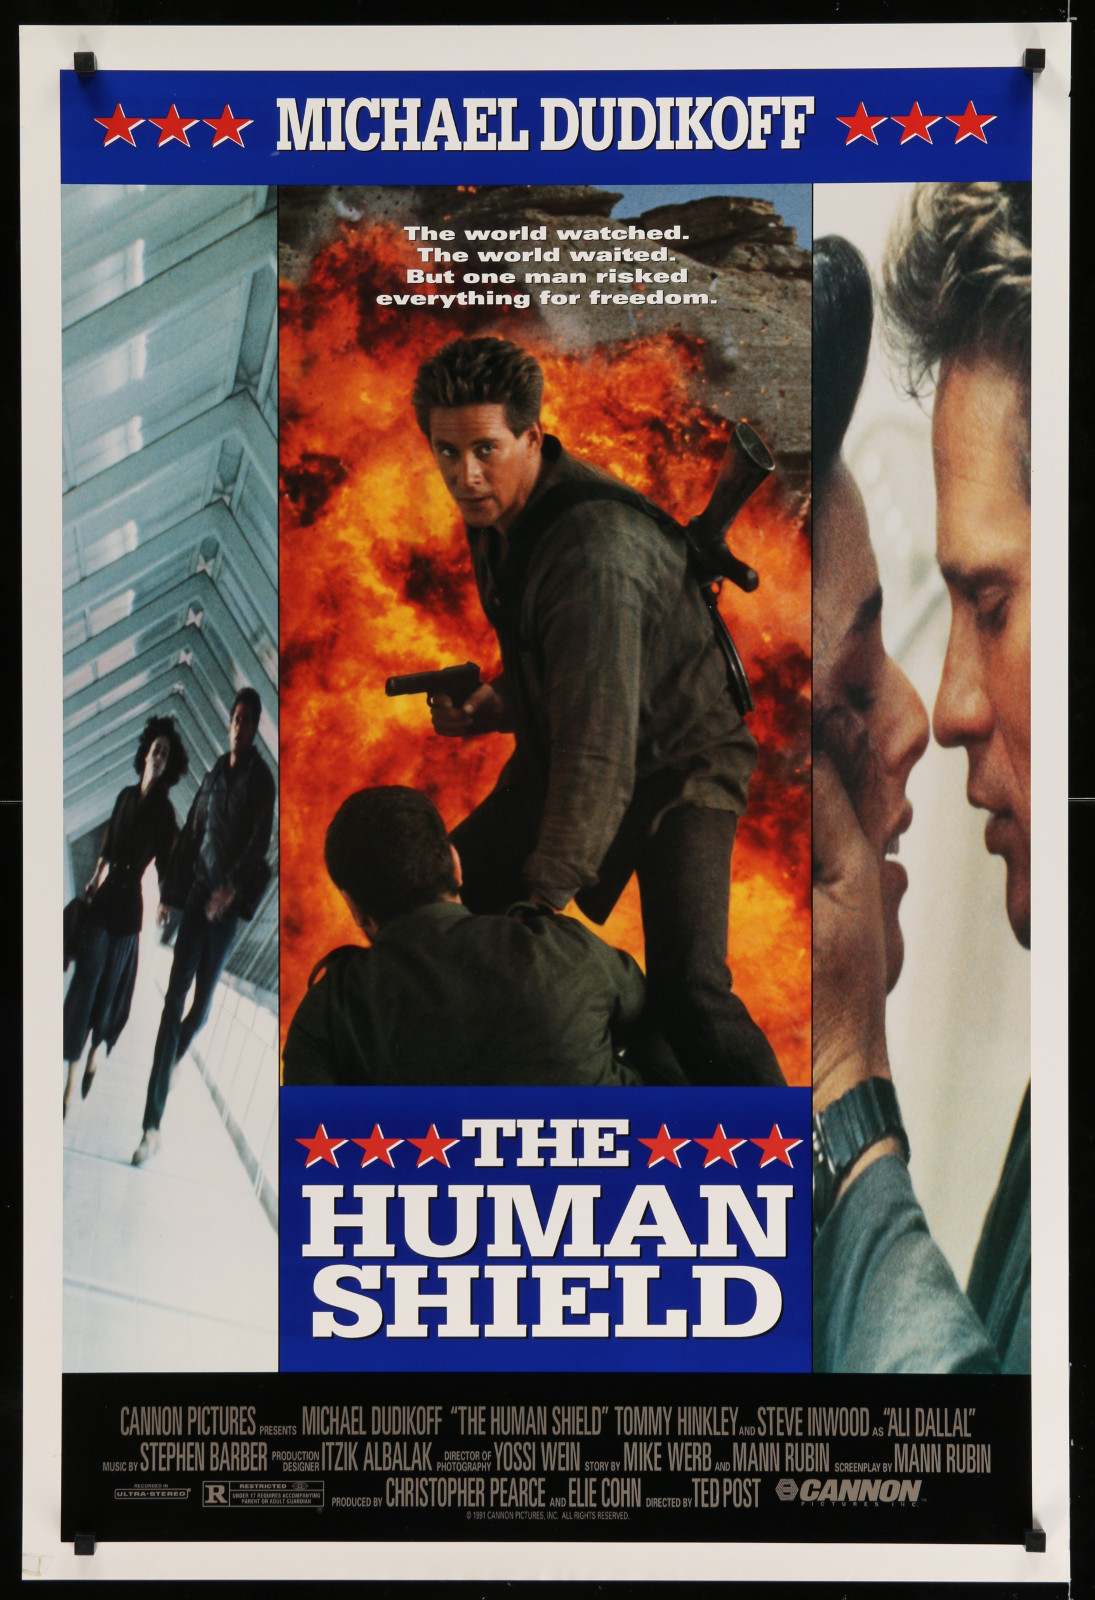 The Human Shield 2A393 A Part Of A Lot 23 Unfolded Mostly Double-Sided 27X40 One-Sheets '90S Great Movie Images!